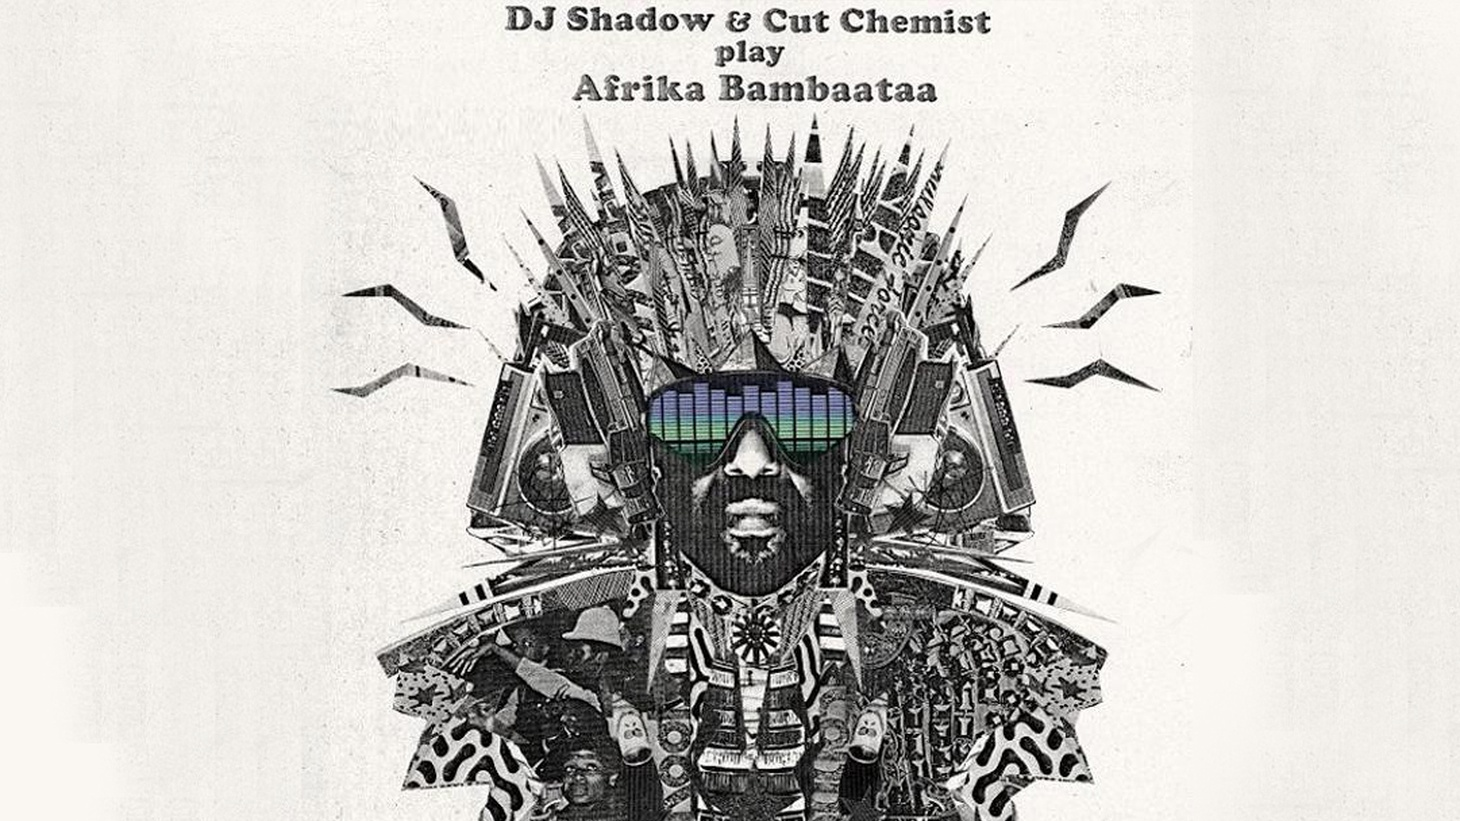 "Last year, DJ Shadow and Cut Chemist embarked on a massive tour honoring hip hop pioneer Afrika Bambaataa by spinning his original vinyl. They filmed the ""Renegades of Rhythm"" live show when they passed through Oakland and tonight they'll host the world premiere screening."